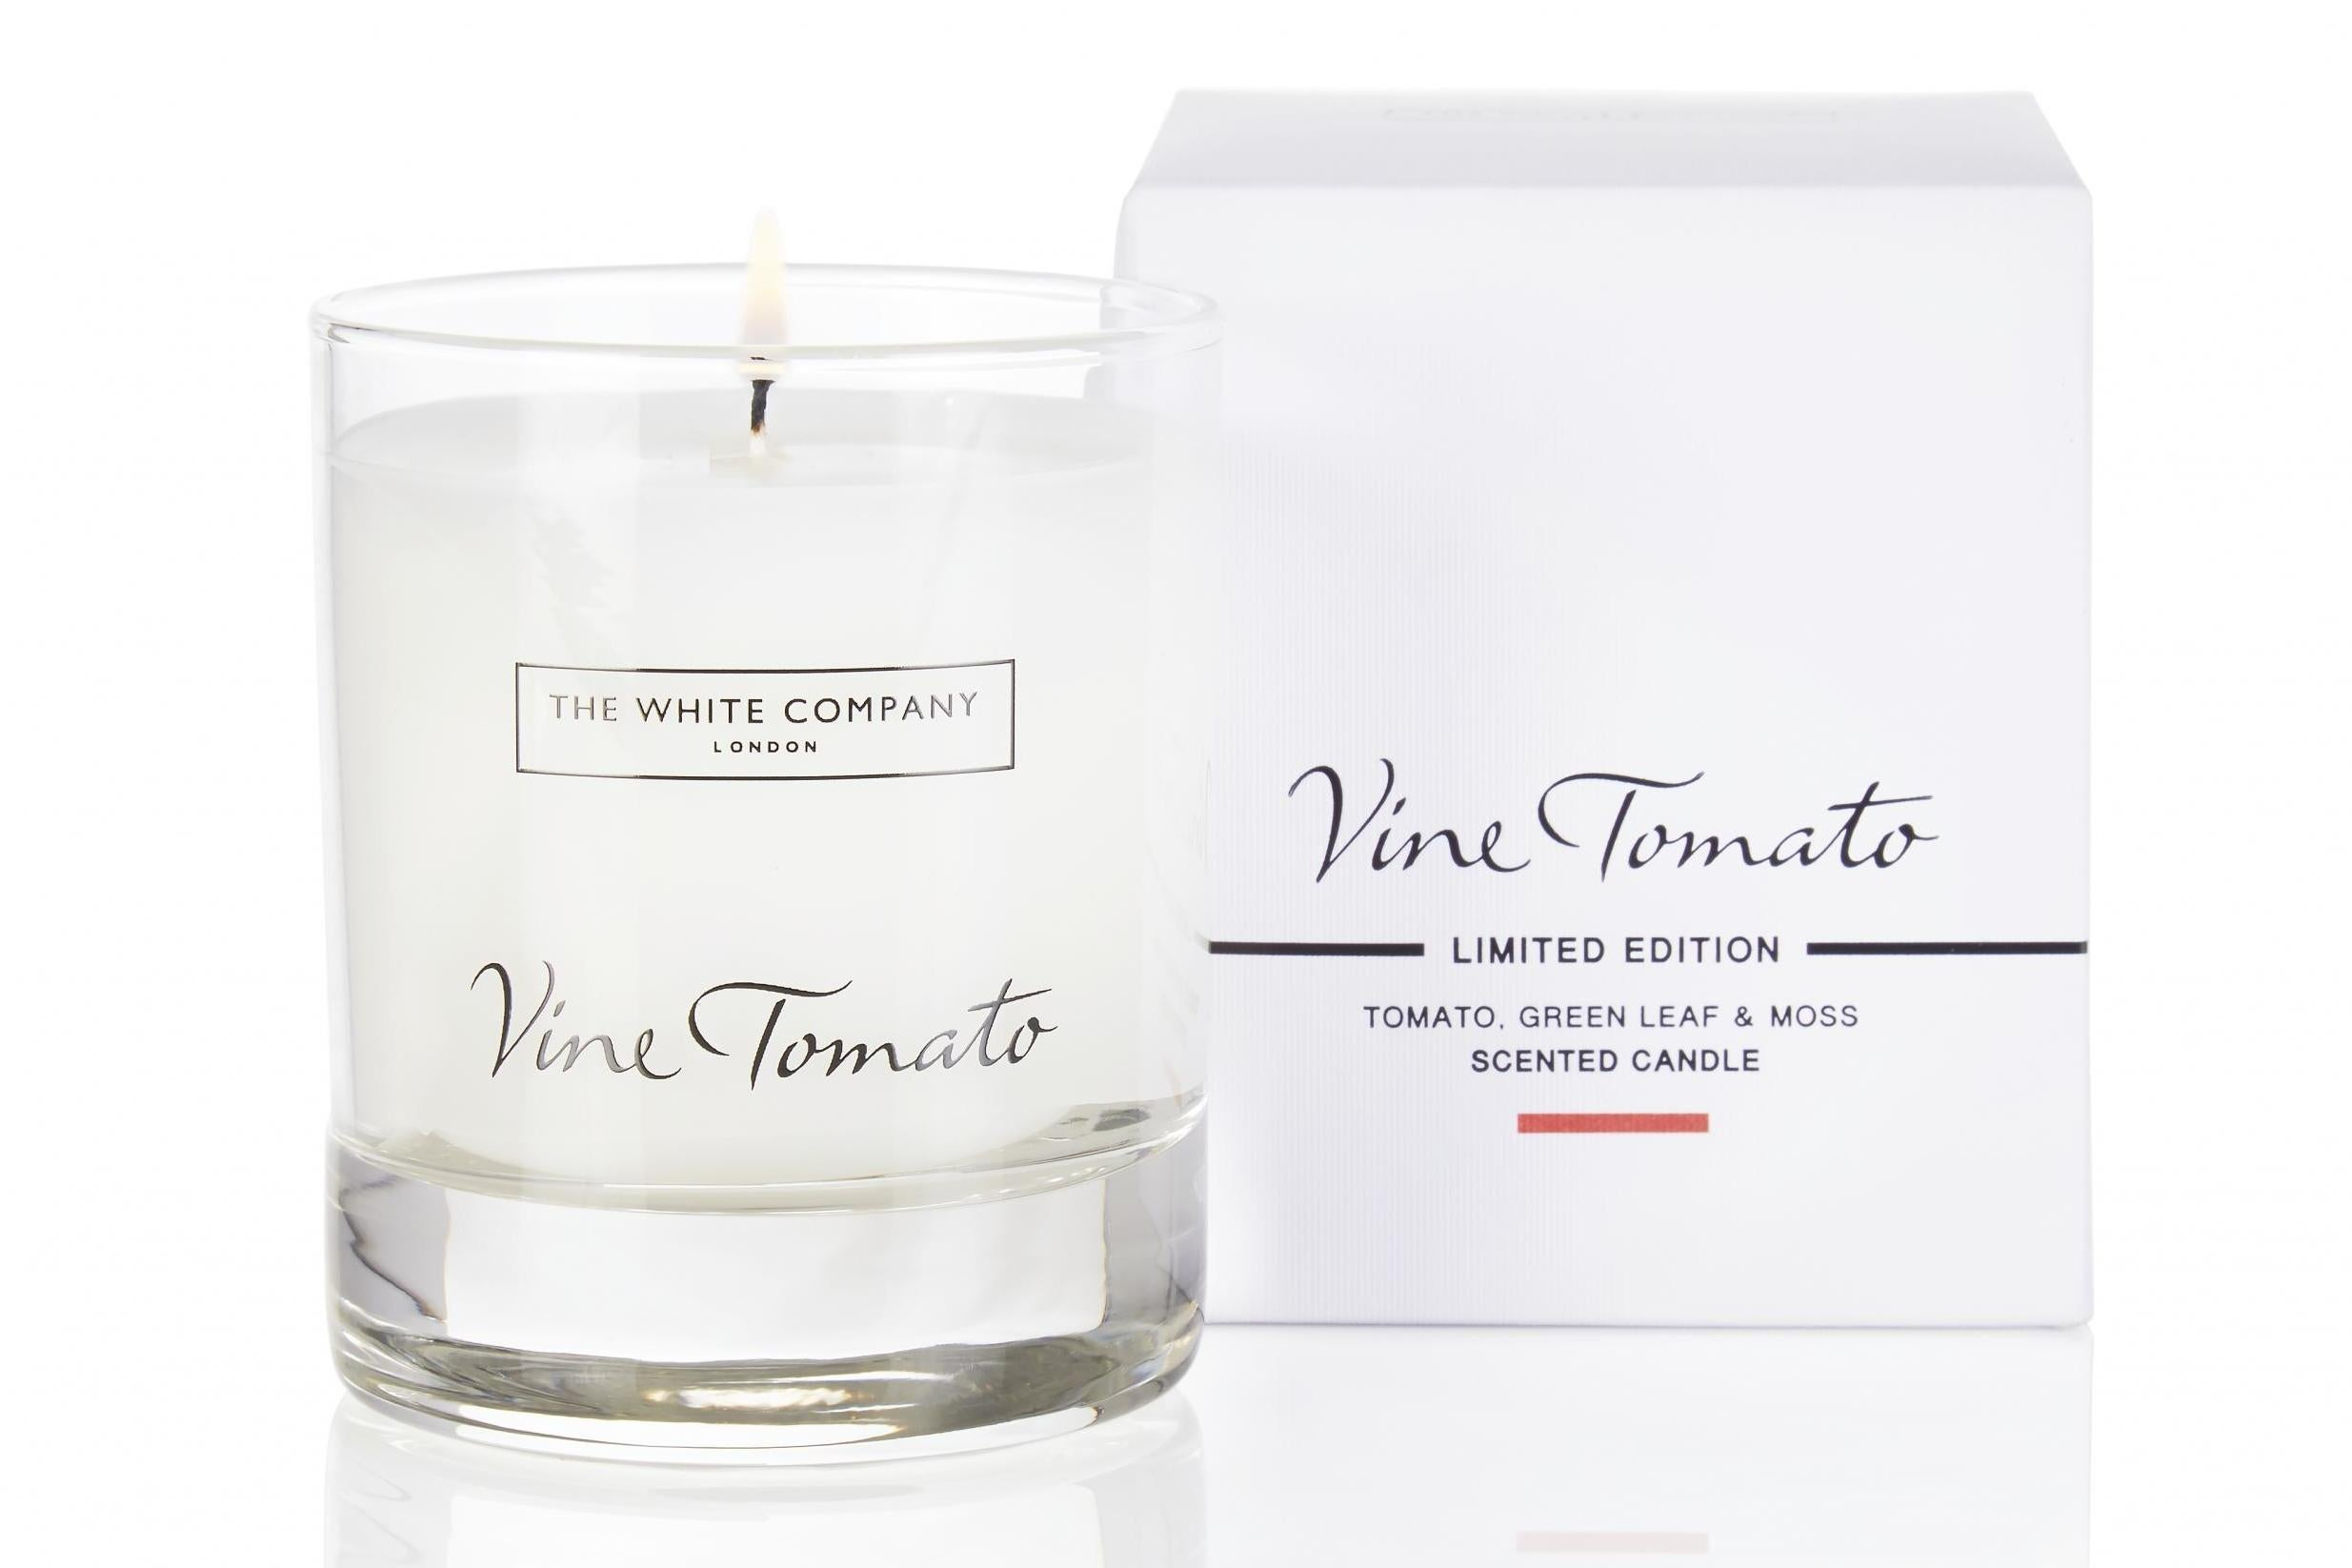 The White Company Vine Tomato Signature Candle 20, The White